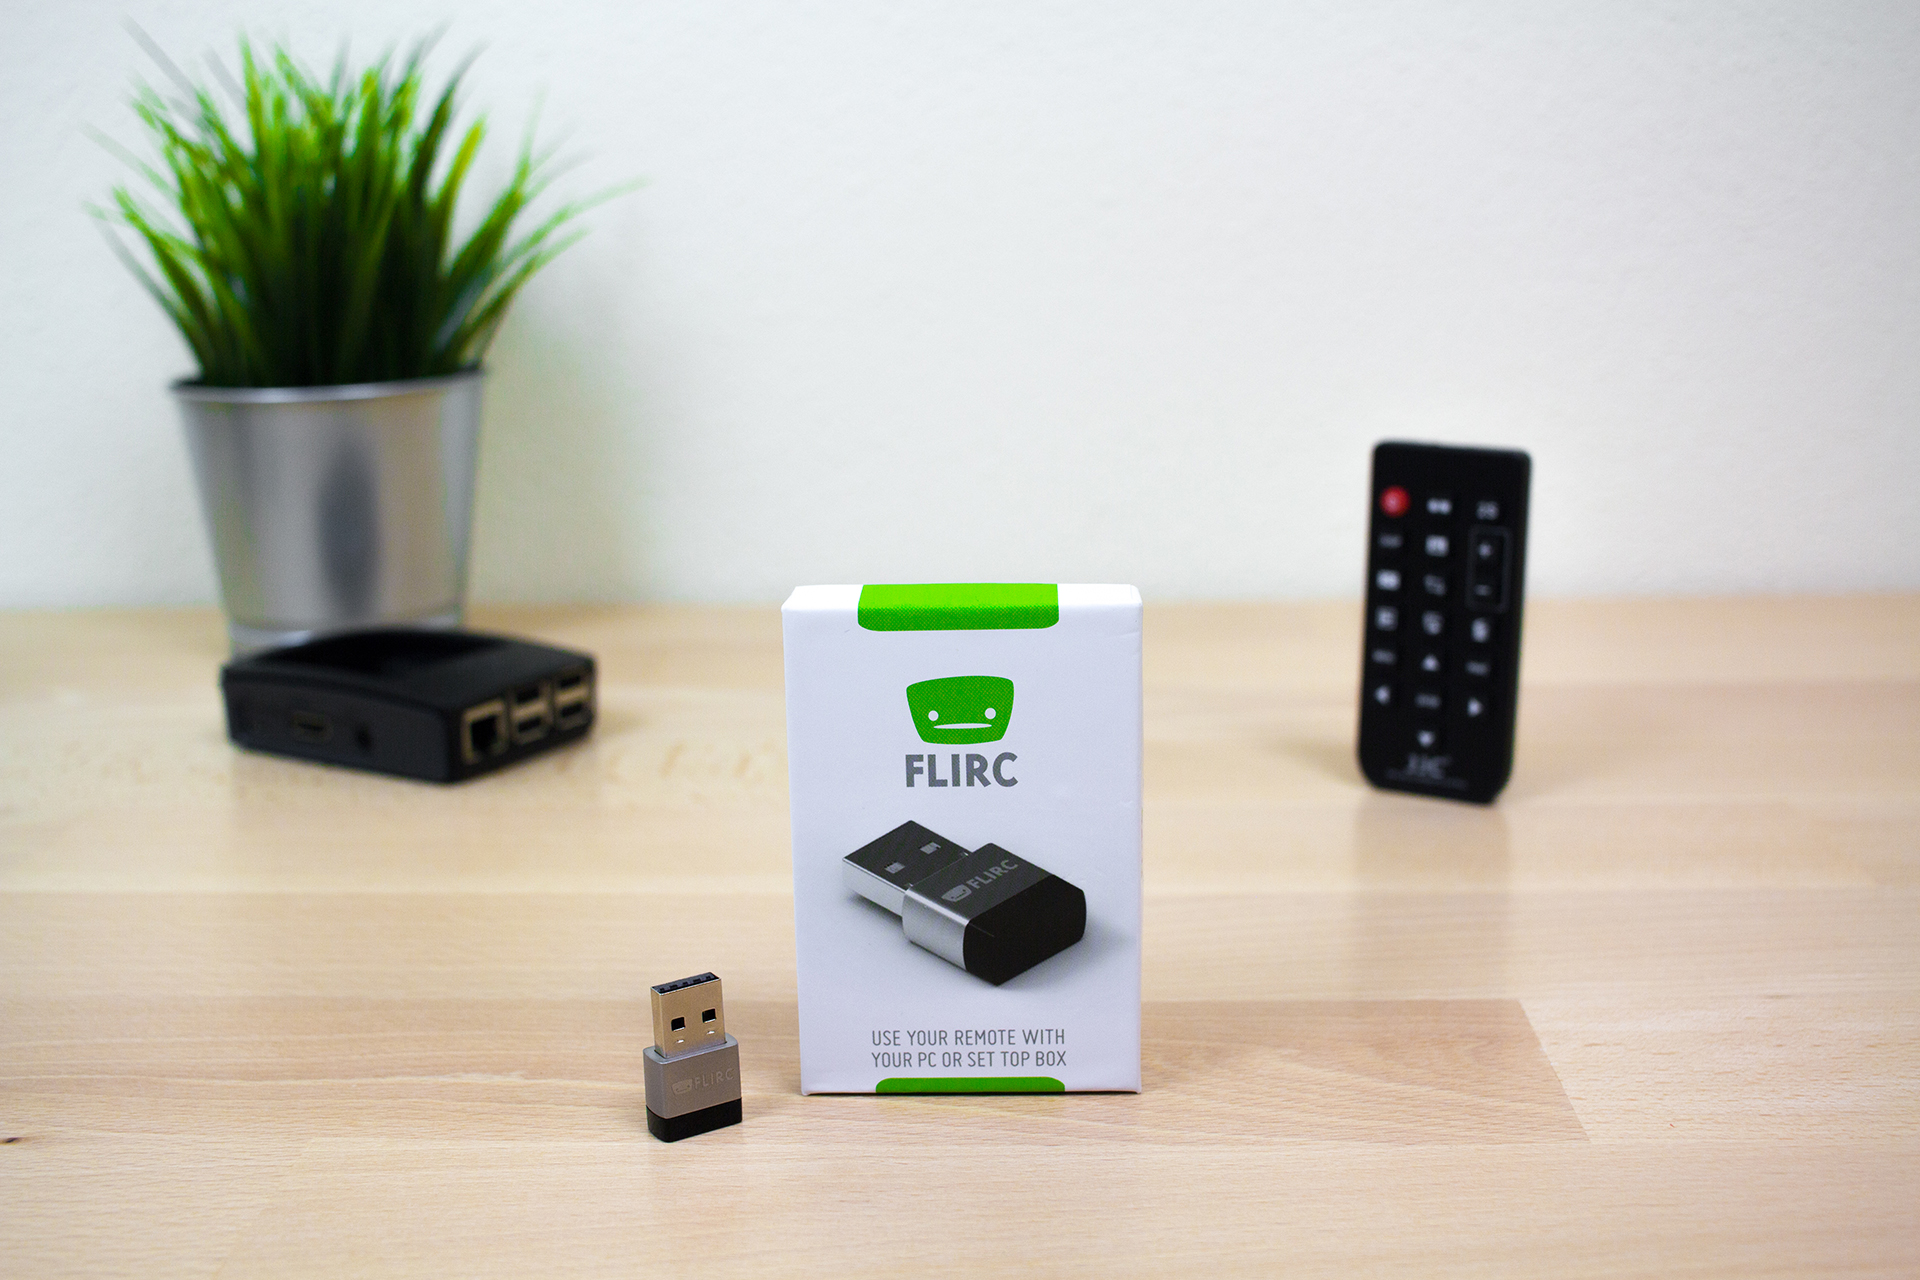 Raspberry Pi Remote - Flirc USB 2nd Generation - DigitaleWelt